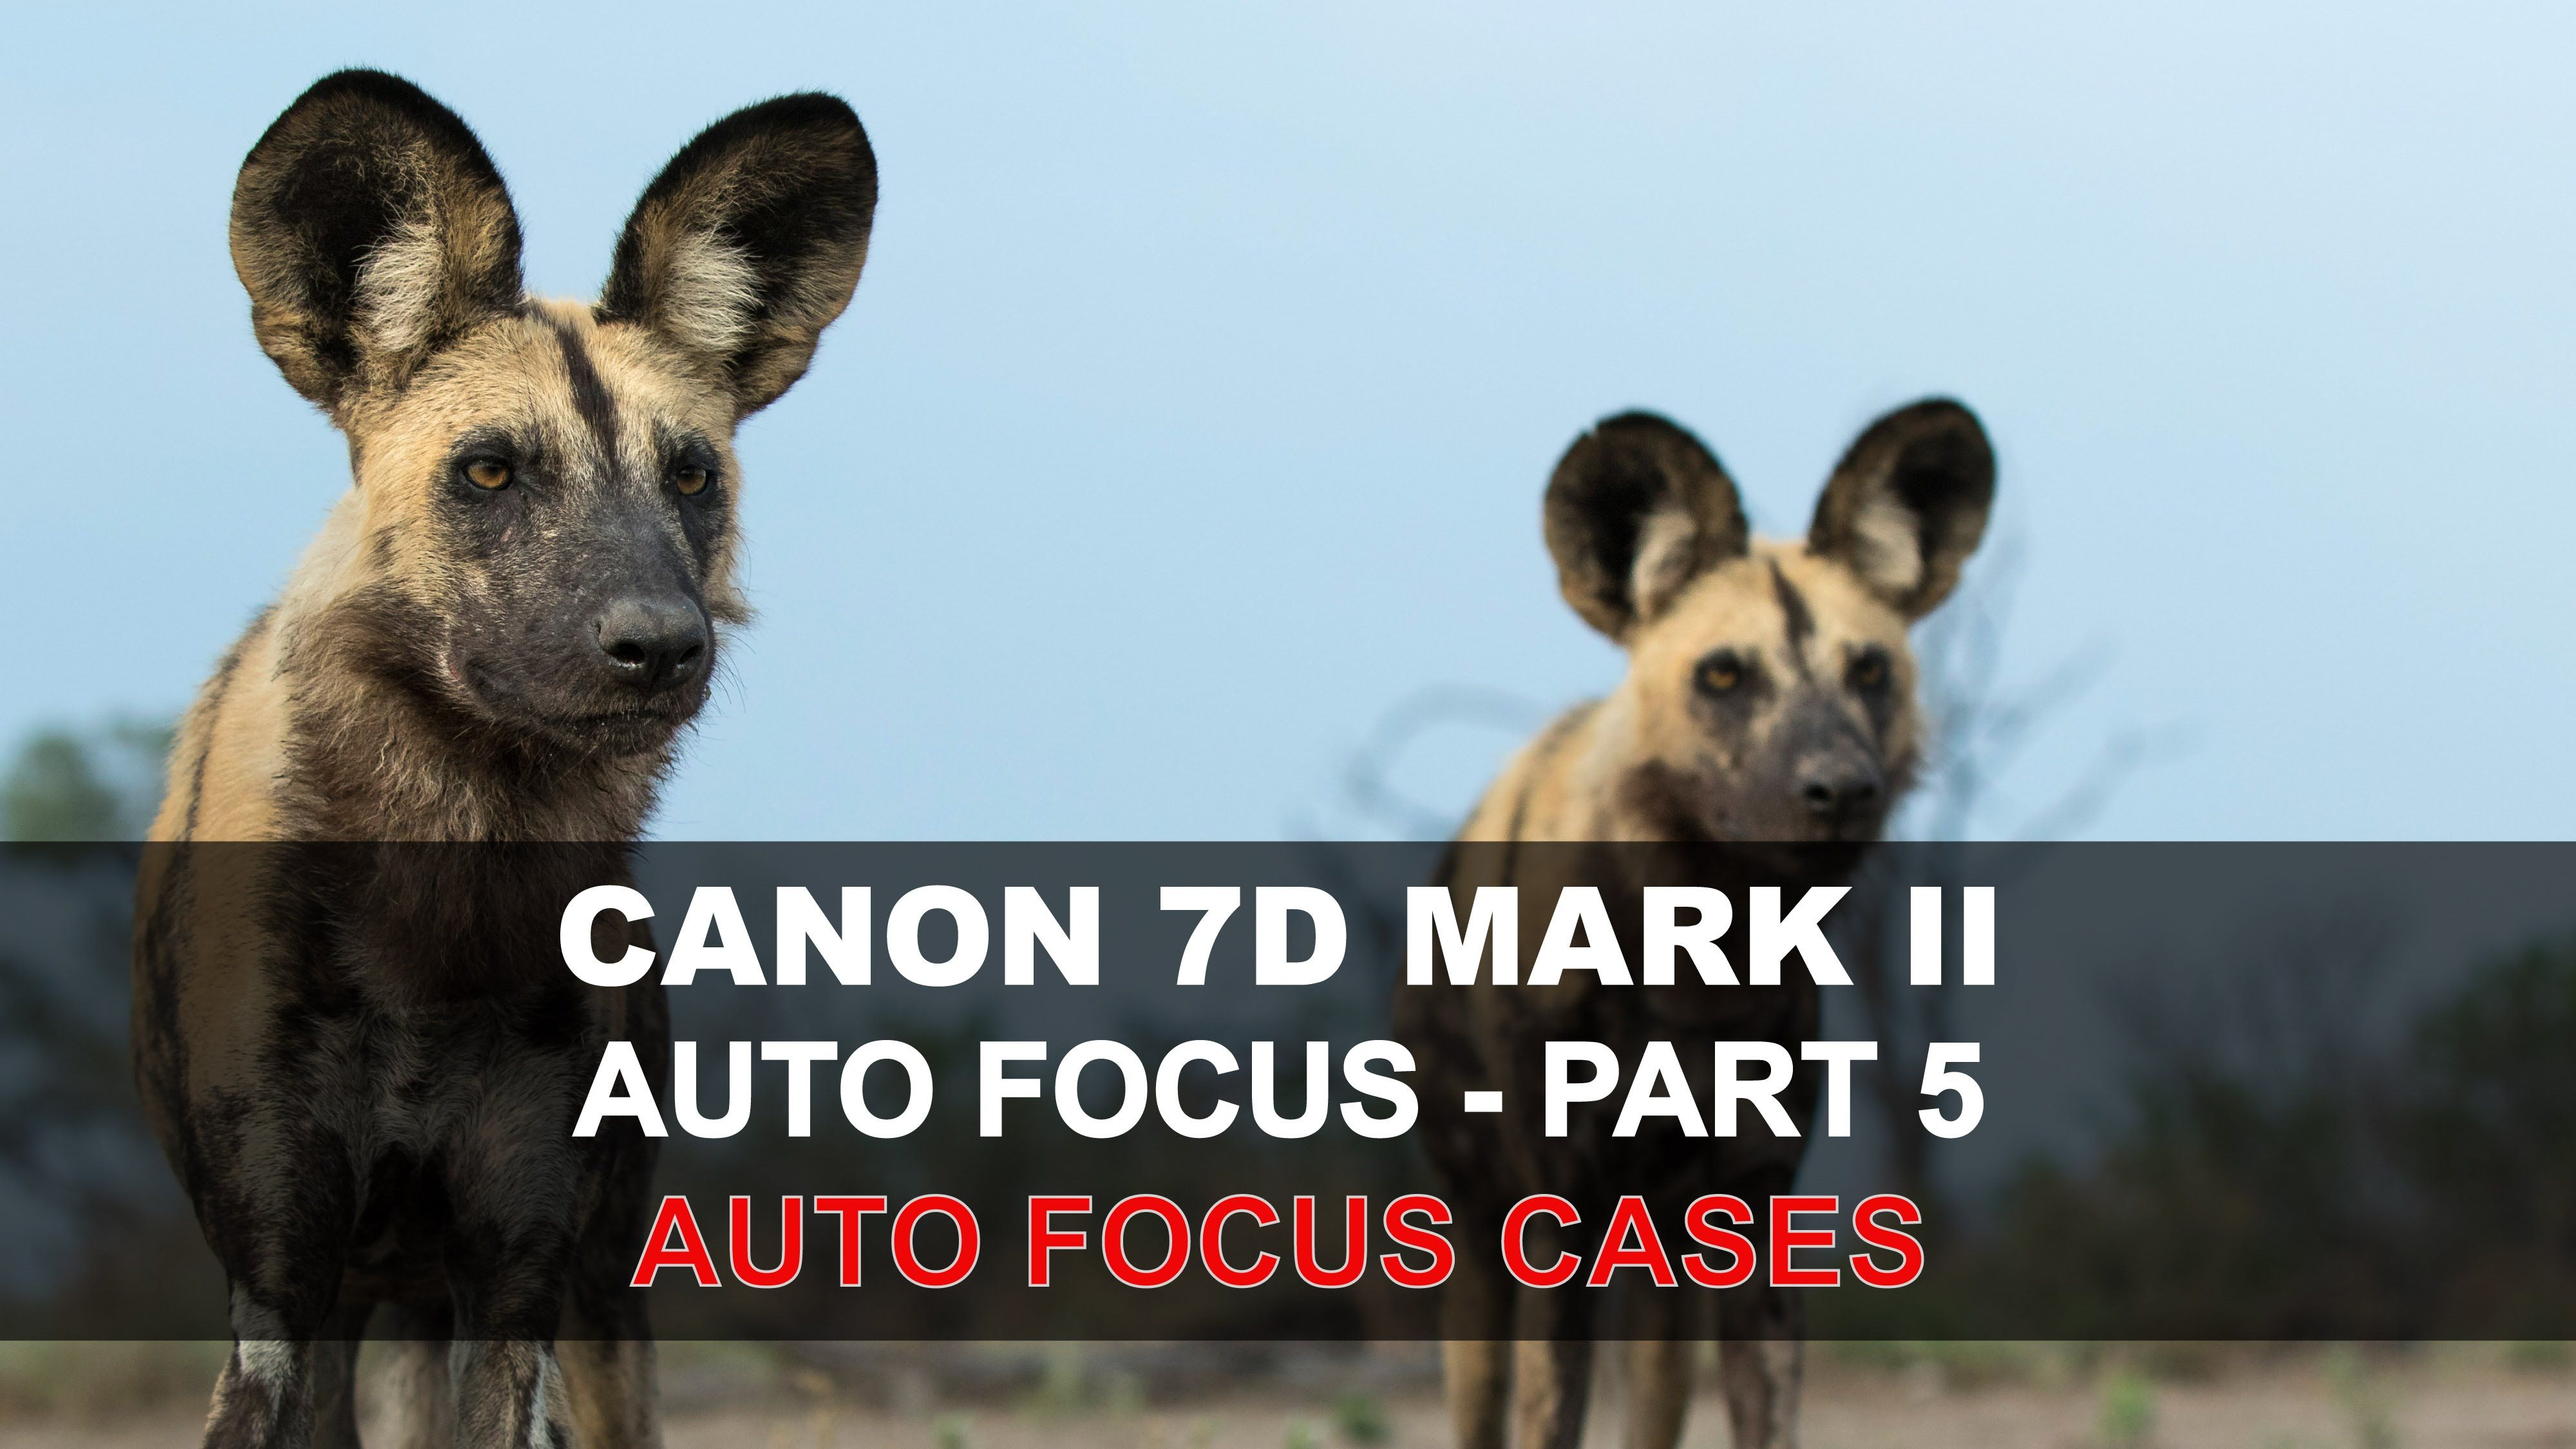 Canon's 7D Mark 2 has a powerful and effective autofocus system, with a comprehensive set of controls and adjustments for setting it up. It shares quite simi...